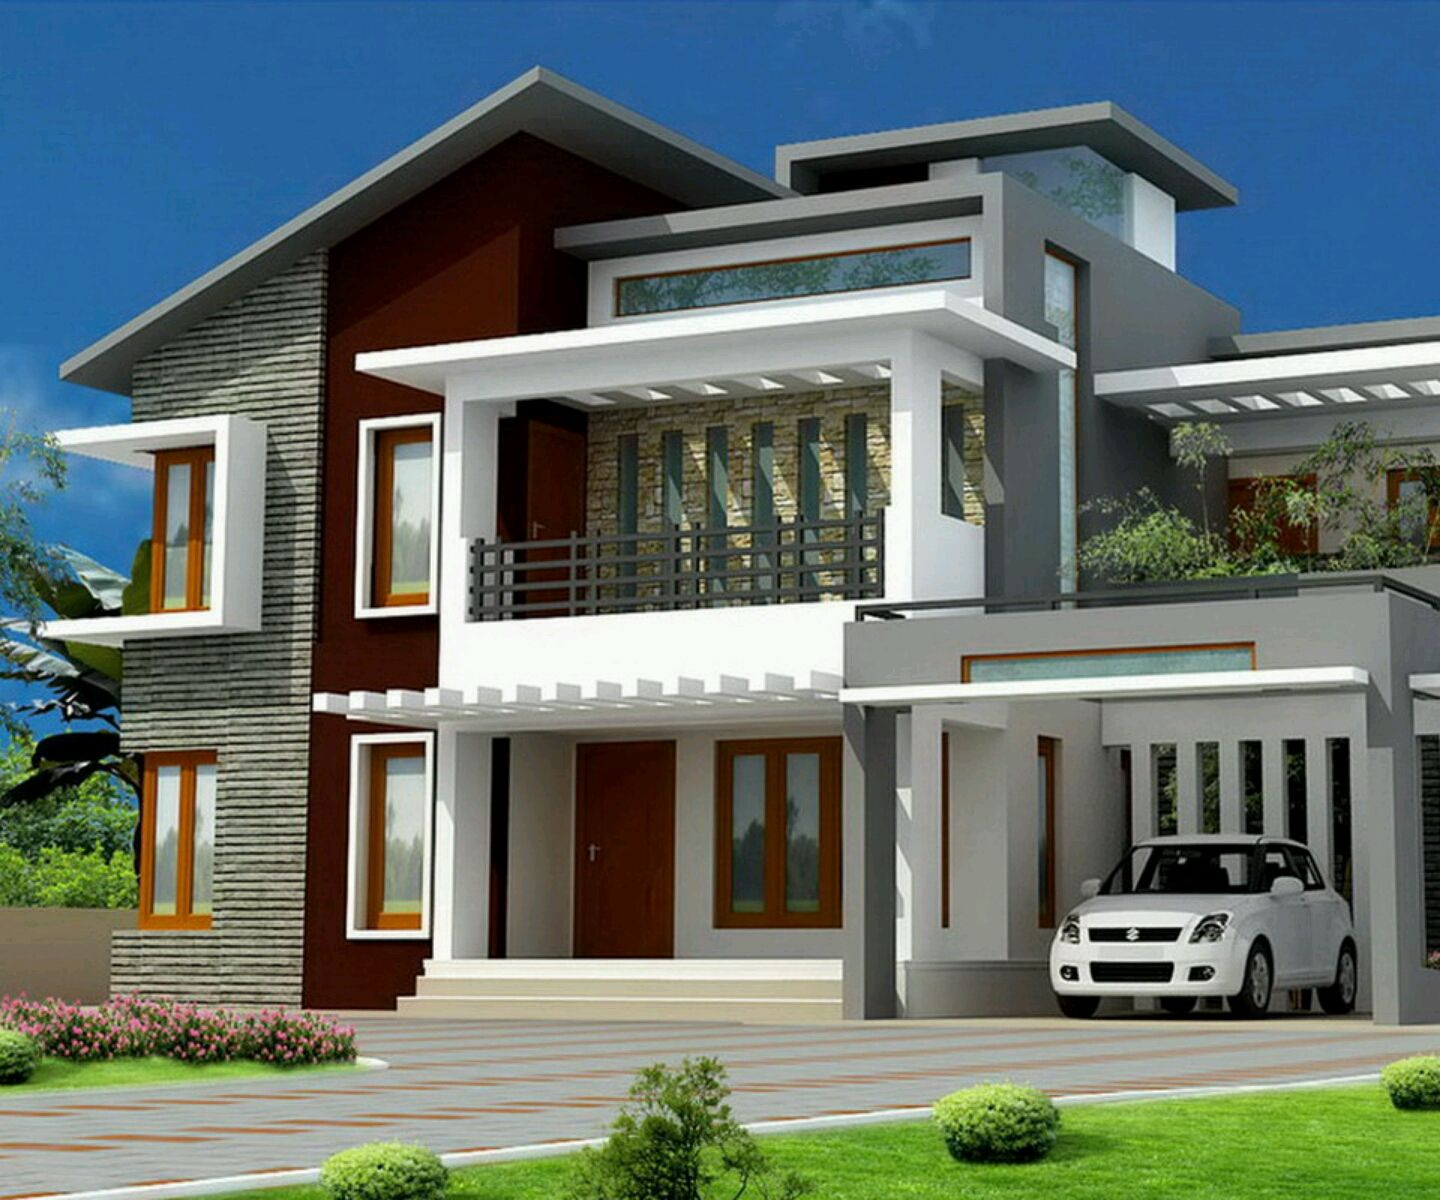 Latest Exterior House Designs Delectable Big House With Modern Design  Modern Home With Latest Exterior . 2017